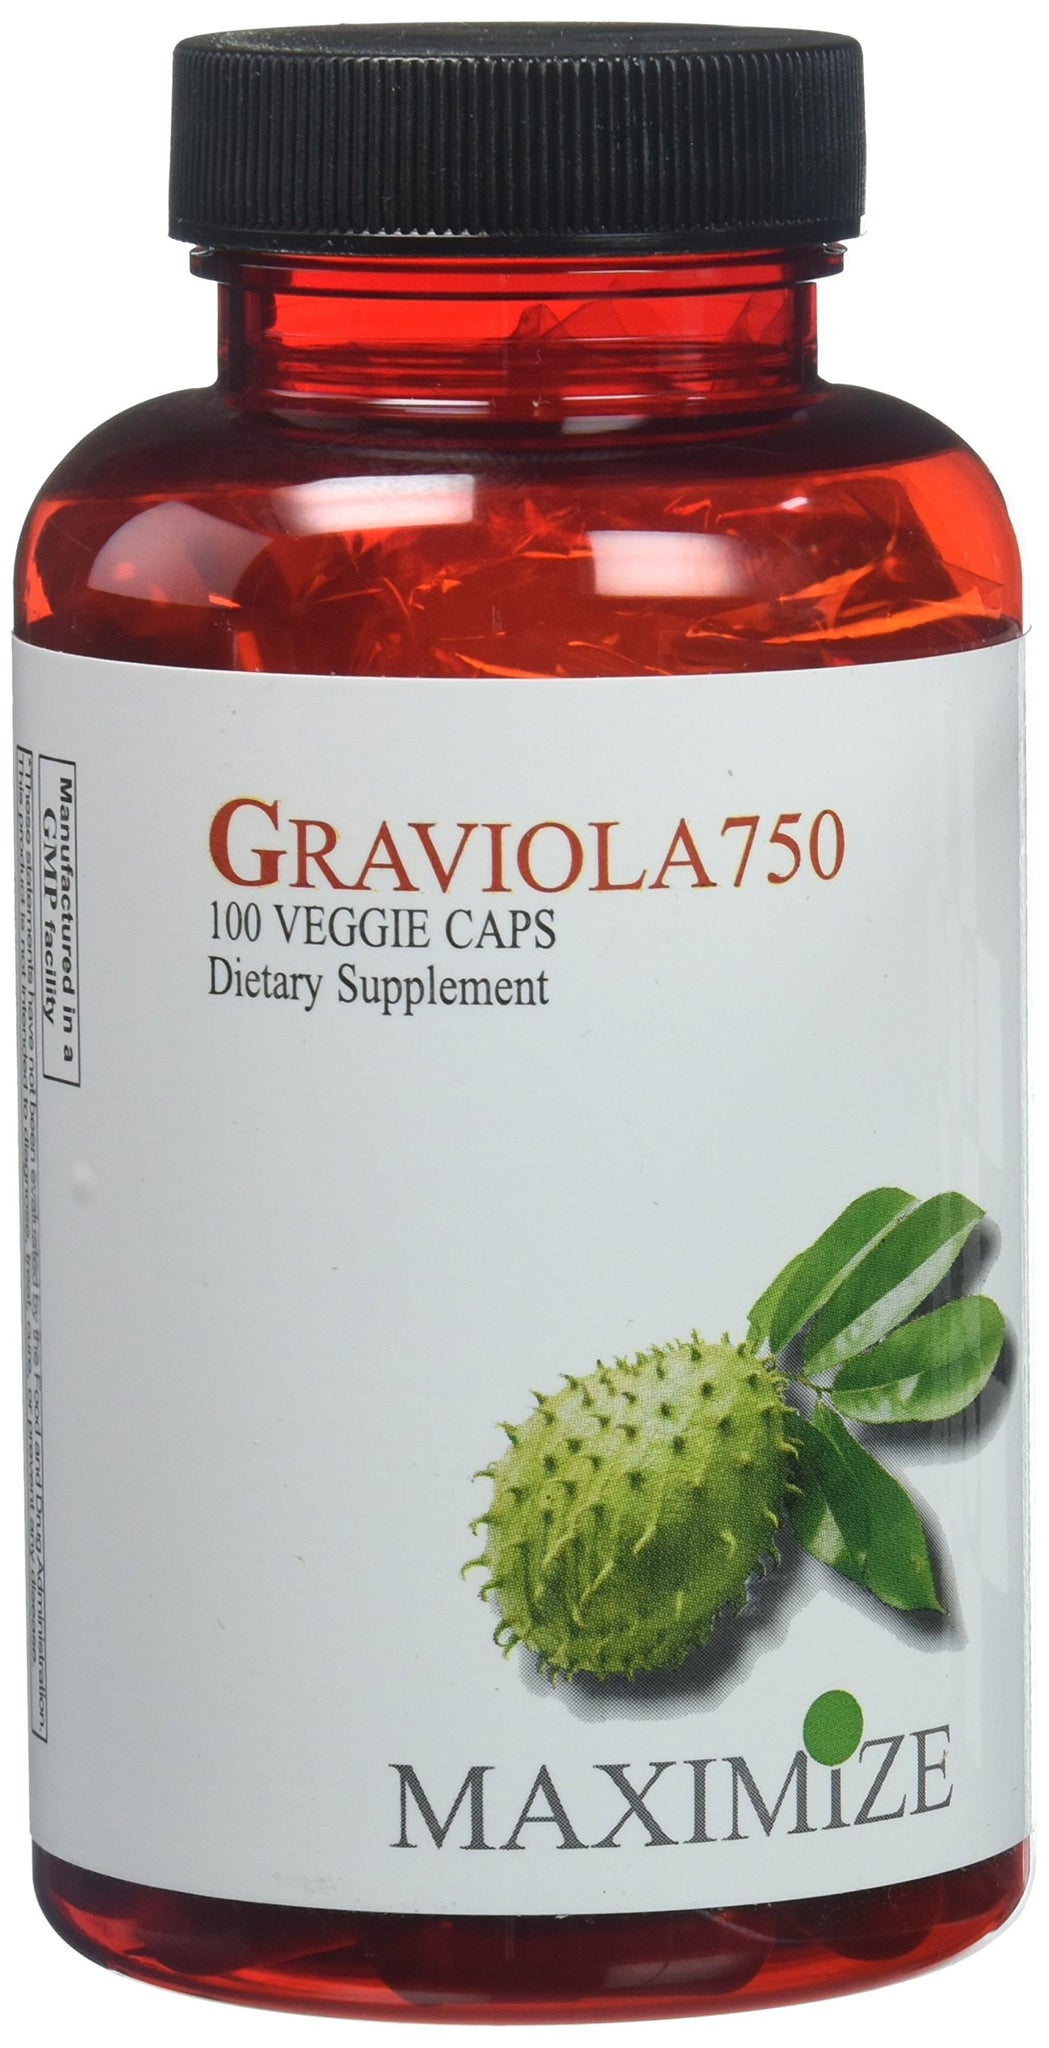 Maximize Graviola 750 by Maximum International -100 Veggie Caps, [wellica]